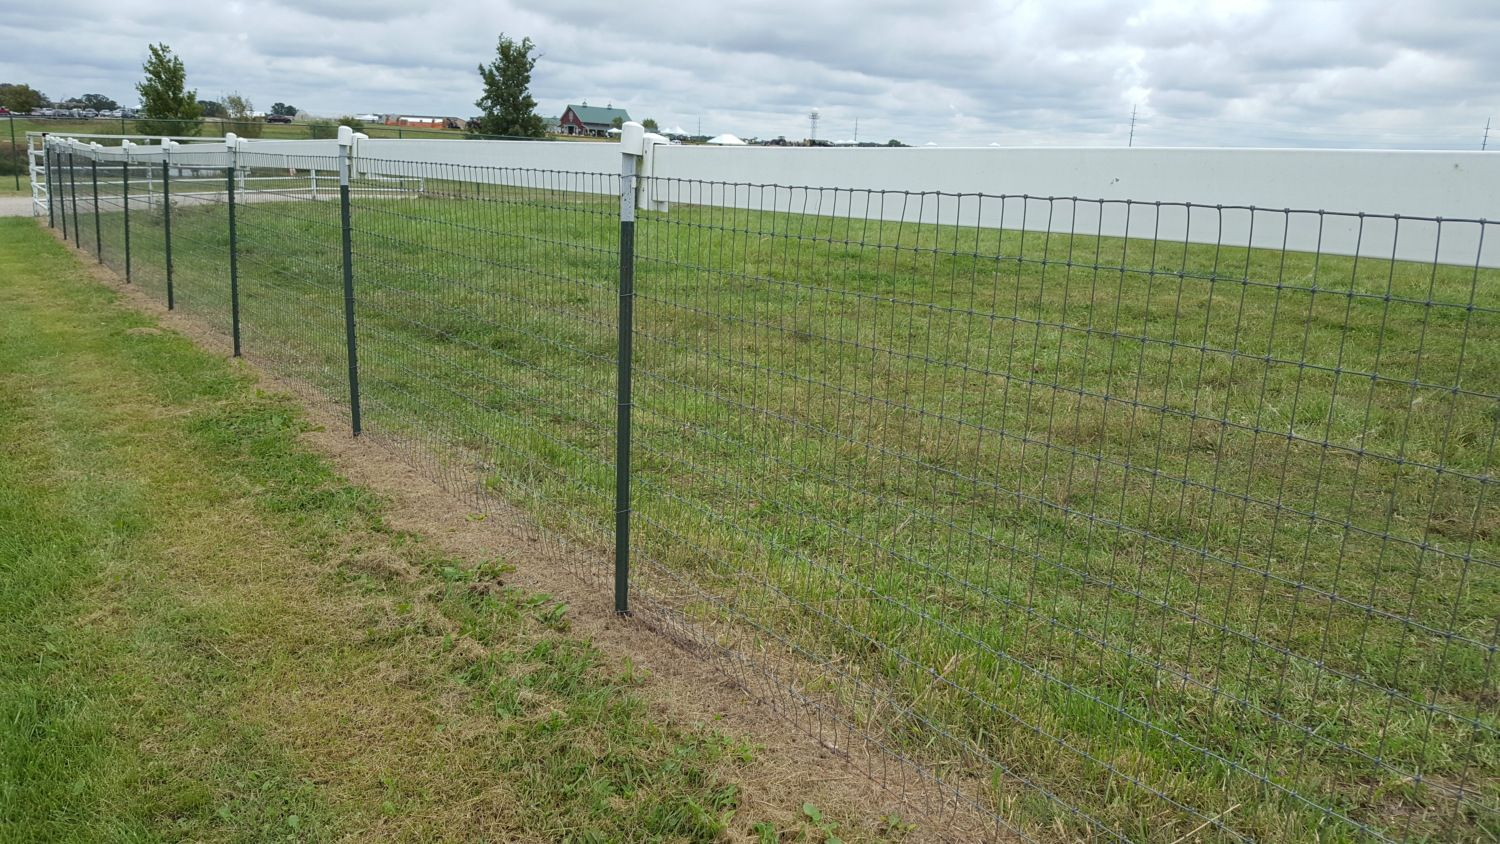 High Tensile Electric Fence Backyard Chickens within Backyard Electric Fence